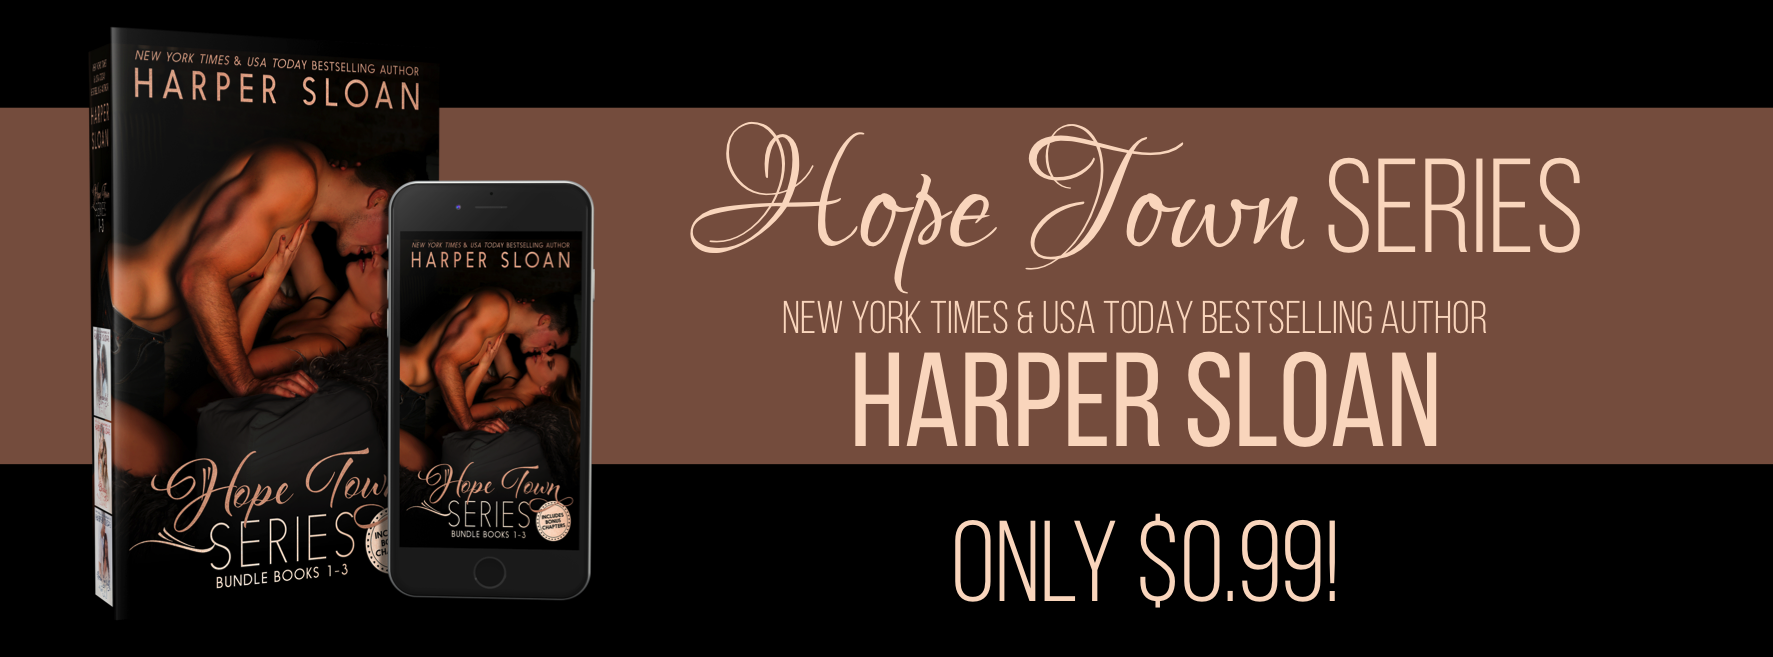 Harper Sloan Announcement